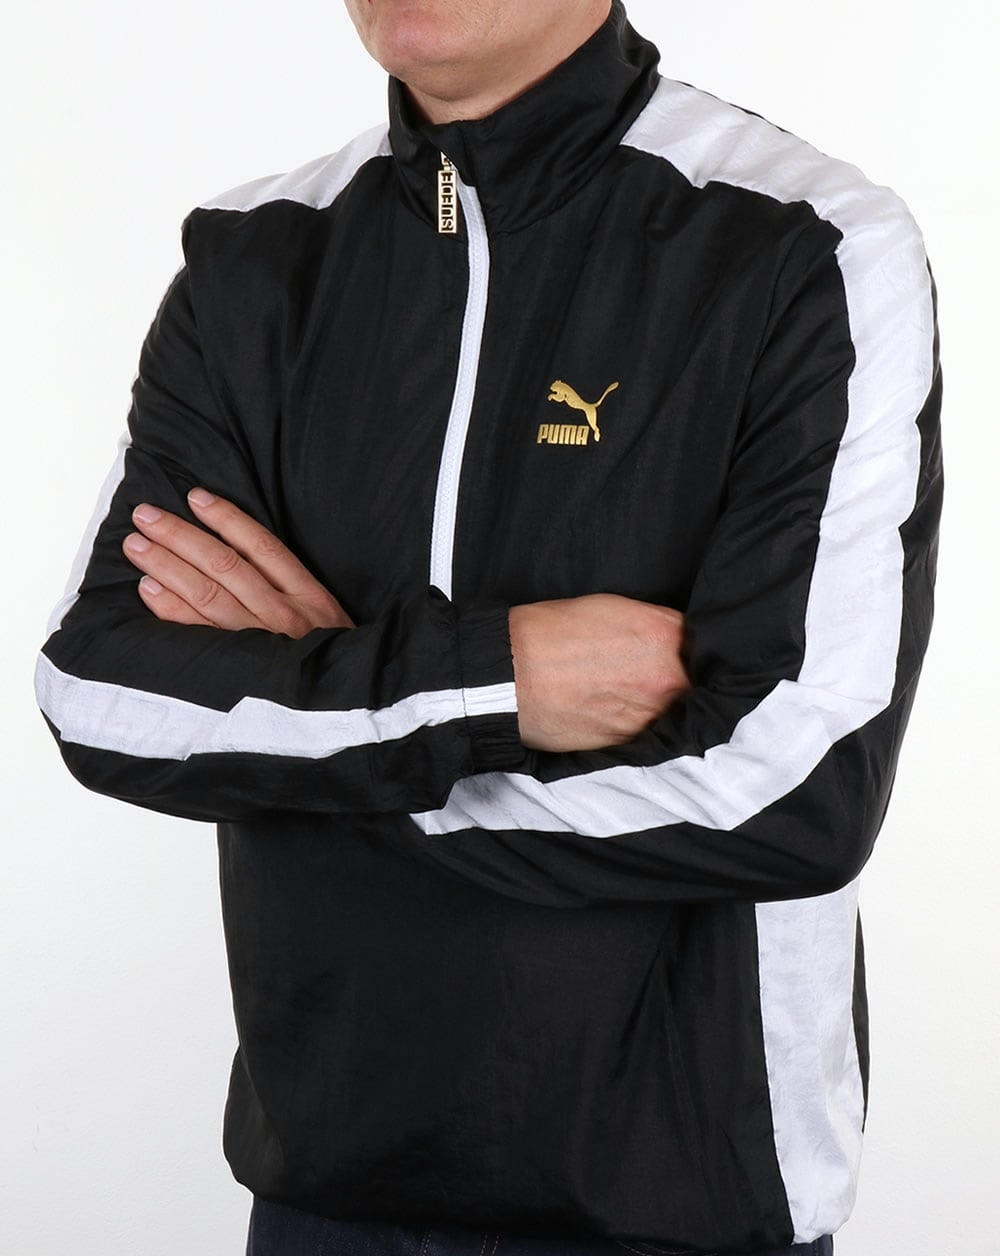 PUMA Savannah Jacket